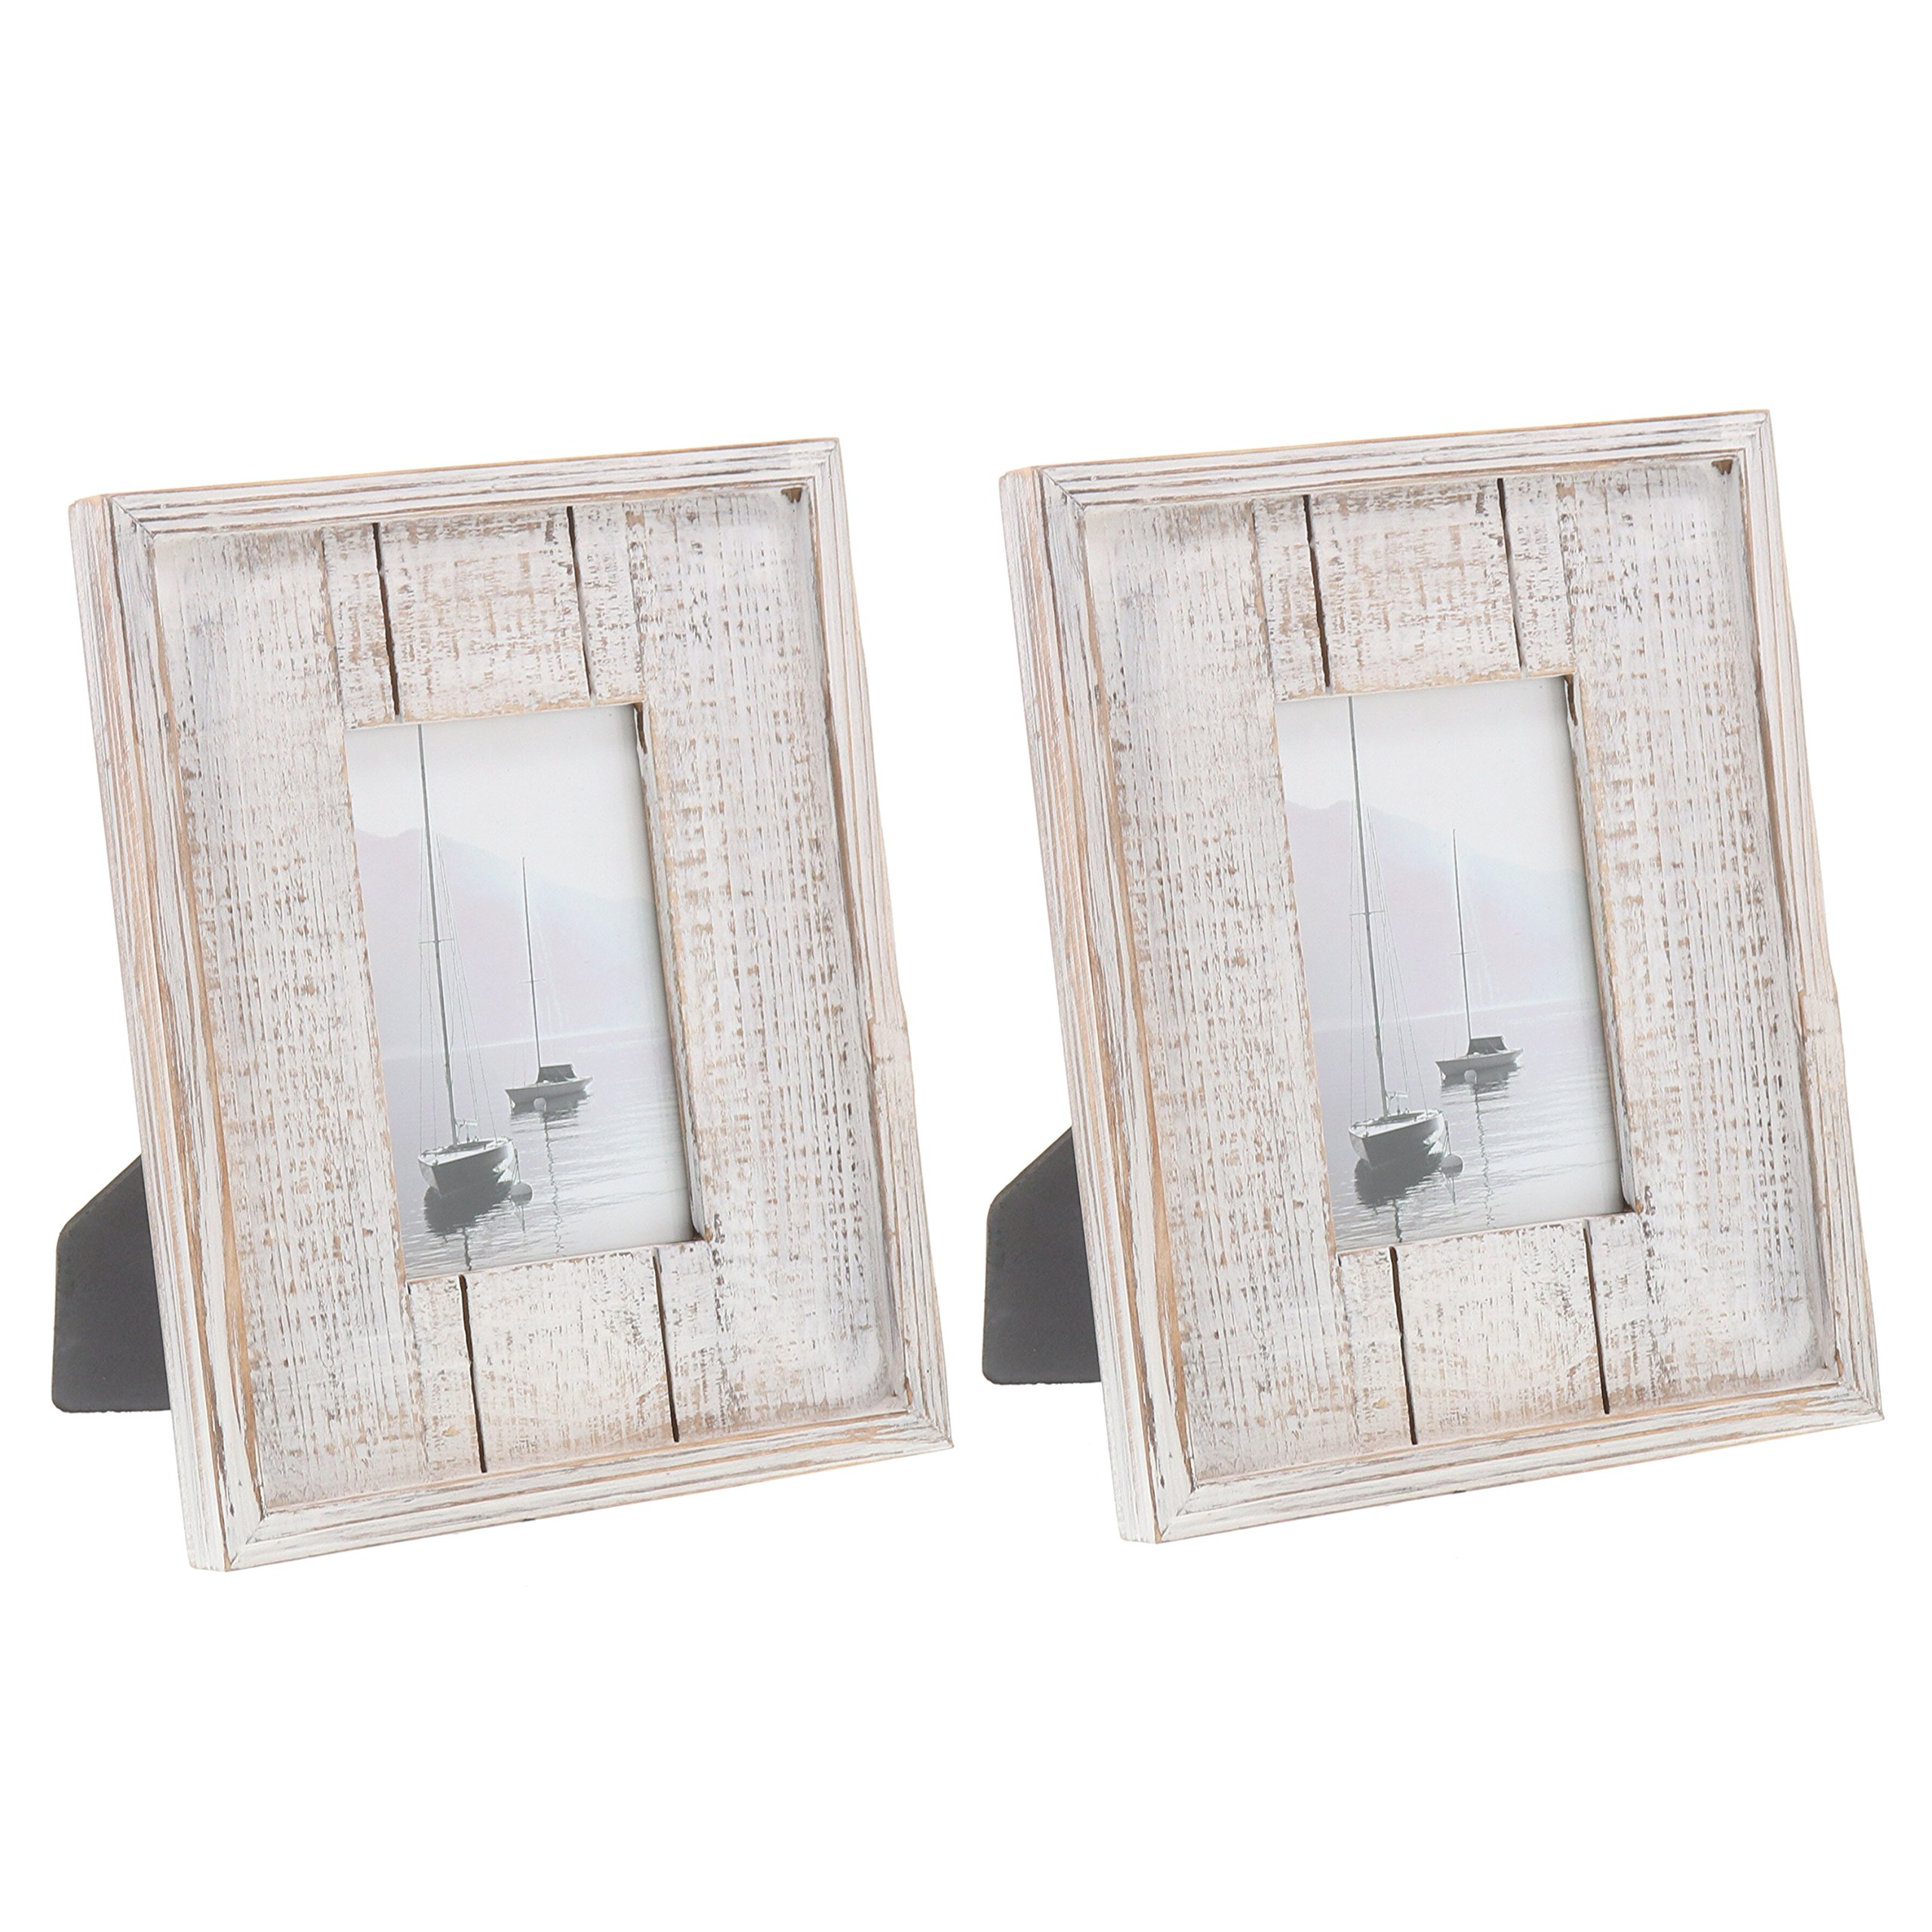 Barnyard Designs Rustic Distressed Picture Frame 4'' x 6'' Wood Photo Frame in White (2-Pack)